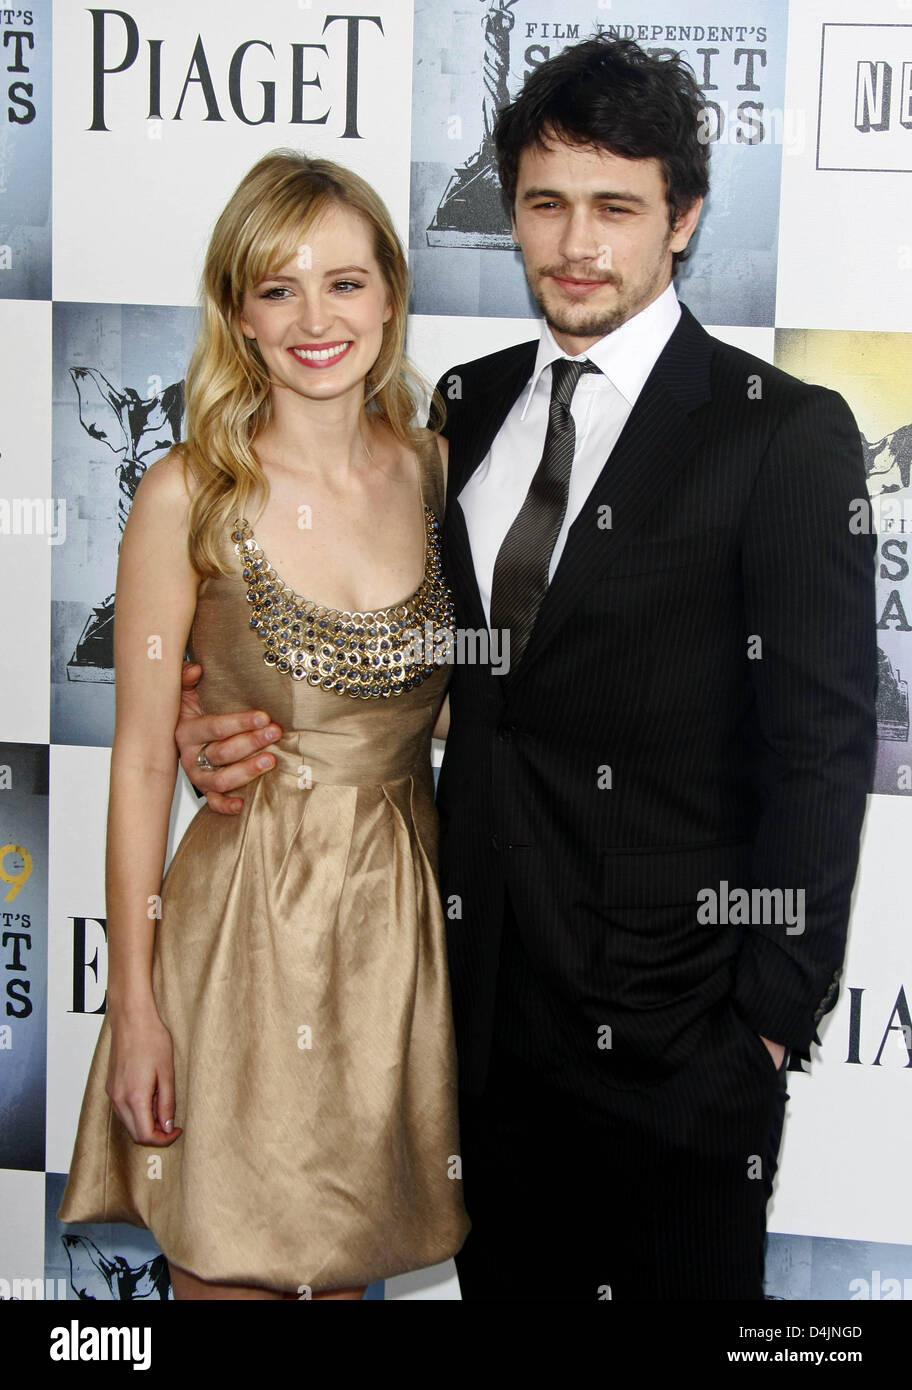 Actor James Franco arr...